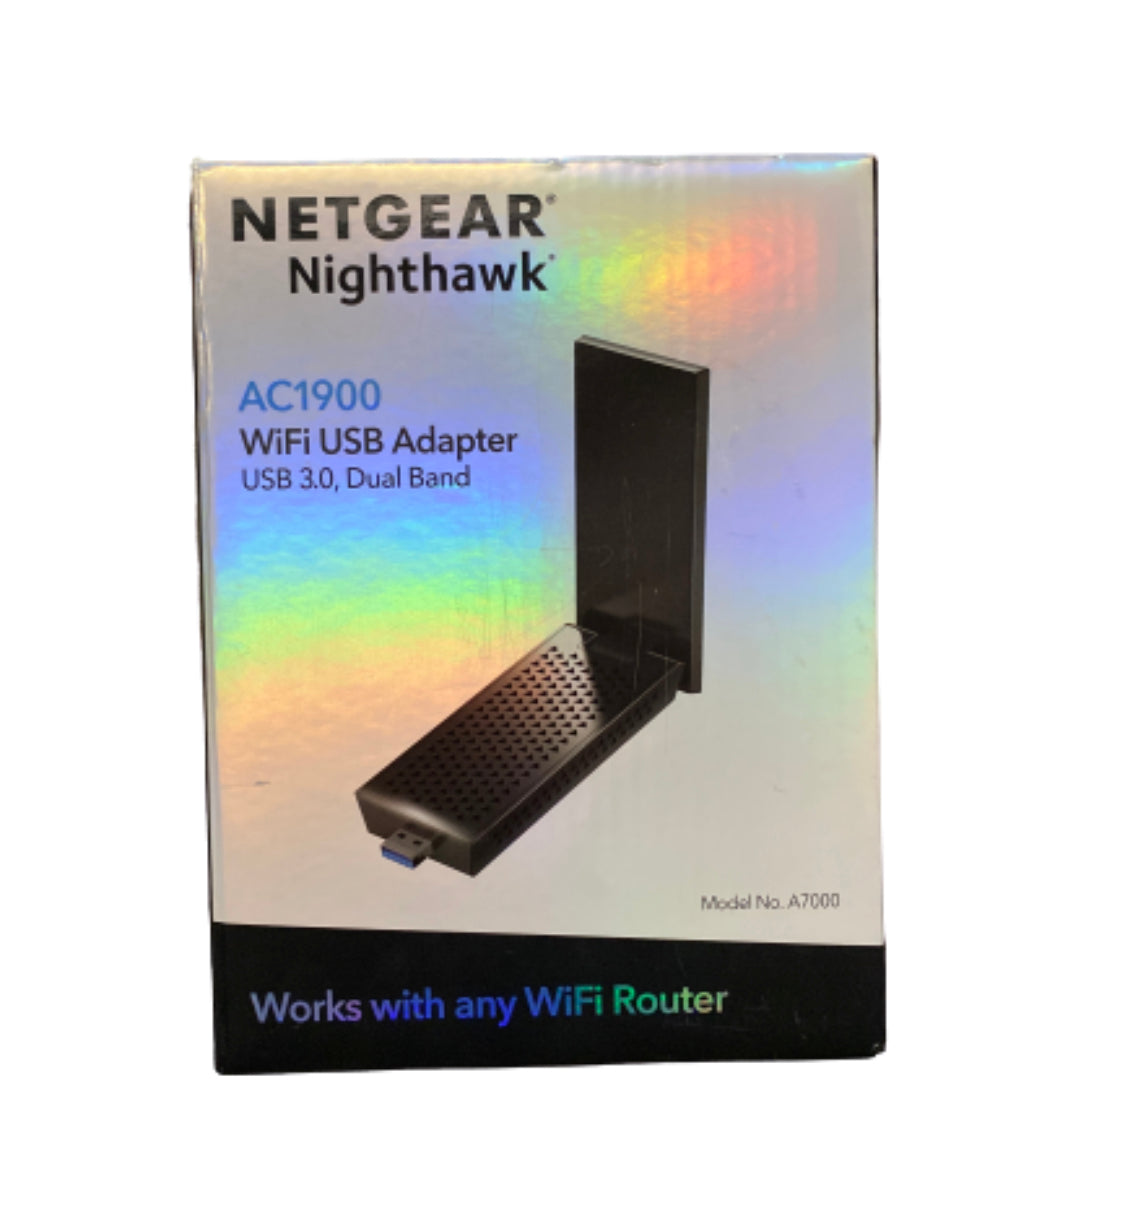 SILICON VALLEY: Gilfoyle's Netgear Nighthawk AC1900 WiFi USB Adapter